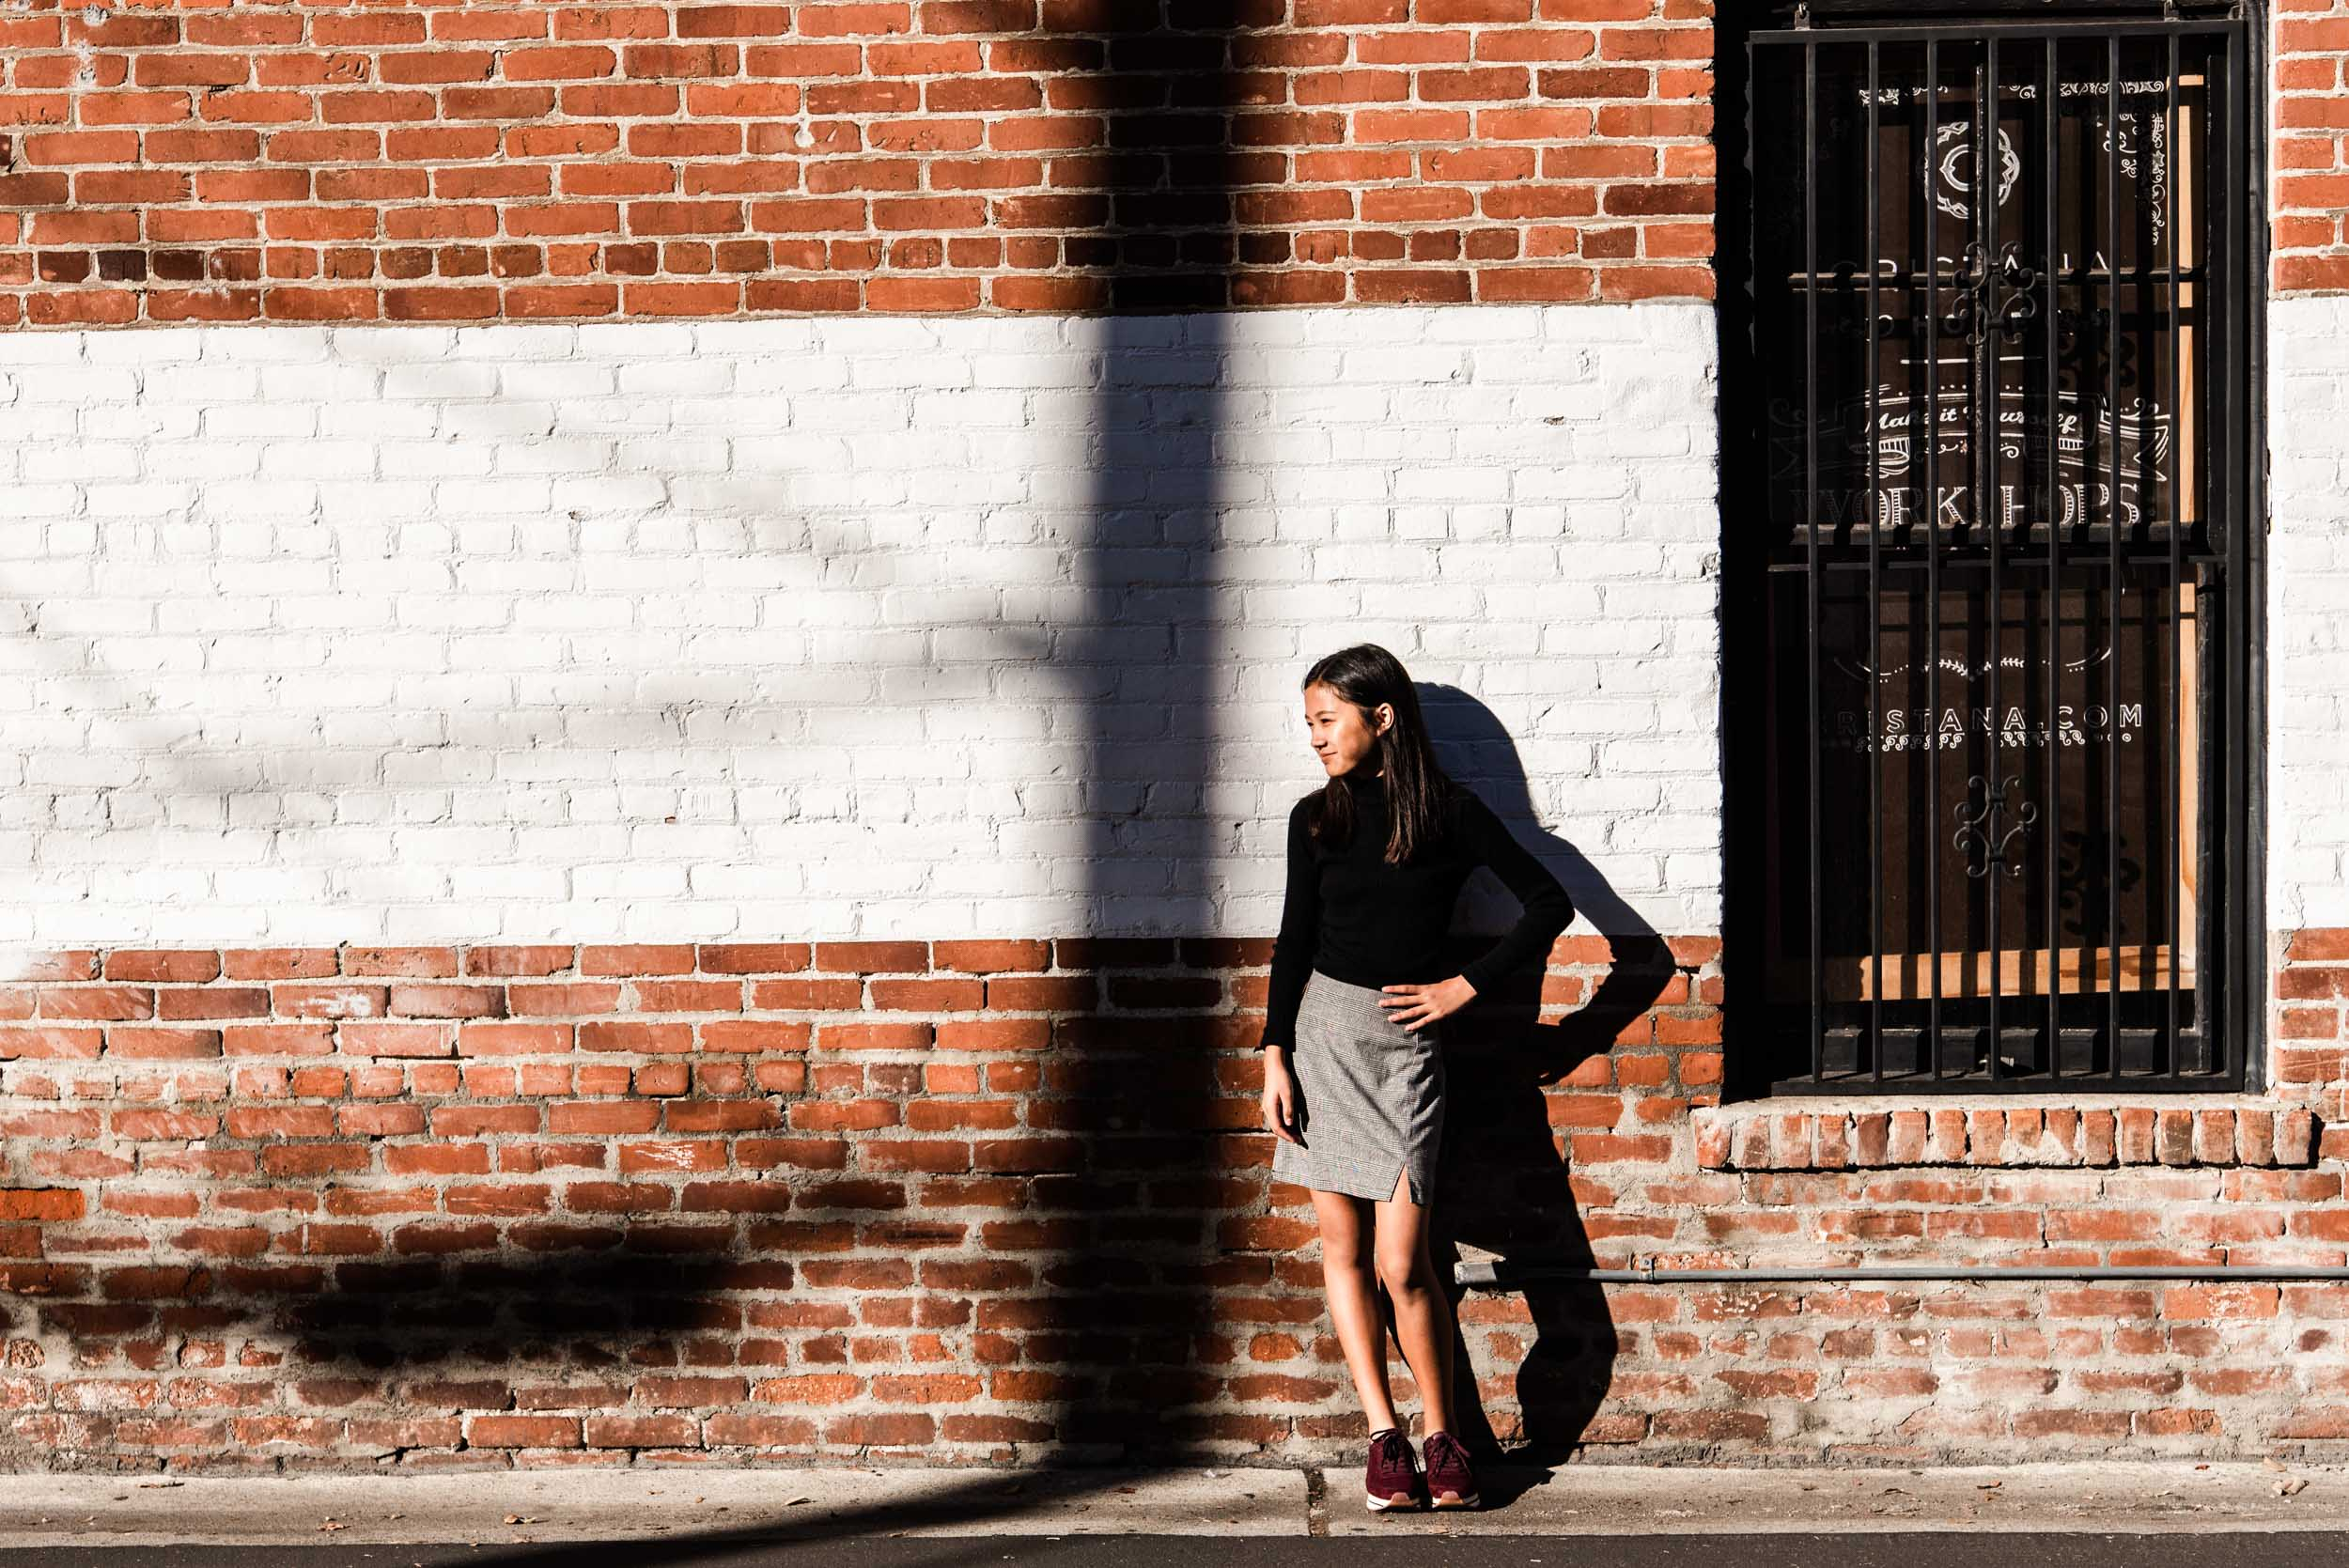 Lisa Hu Chen | young girl smiling while standing in front of a brick wall in Old Town Orange